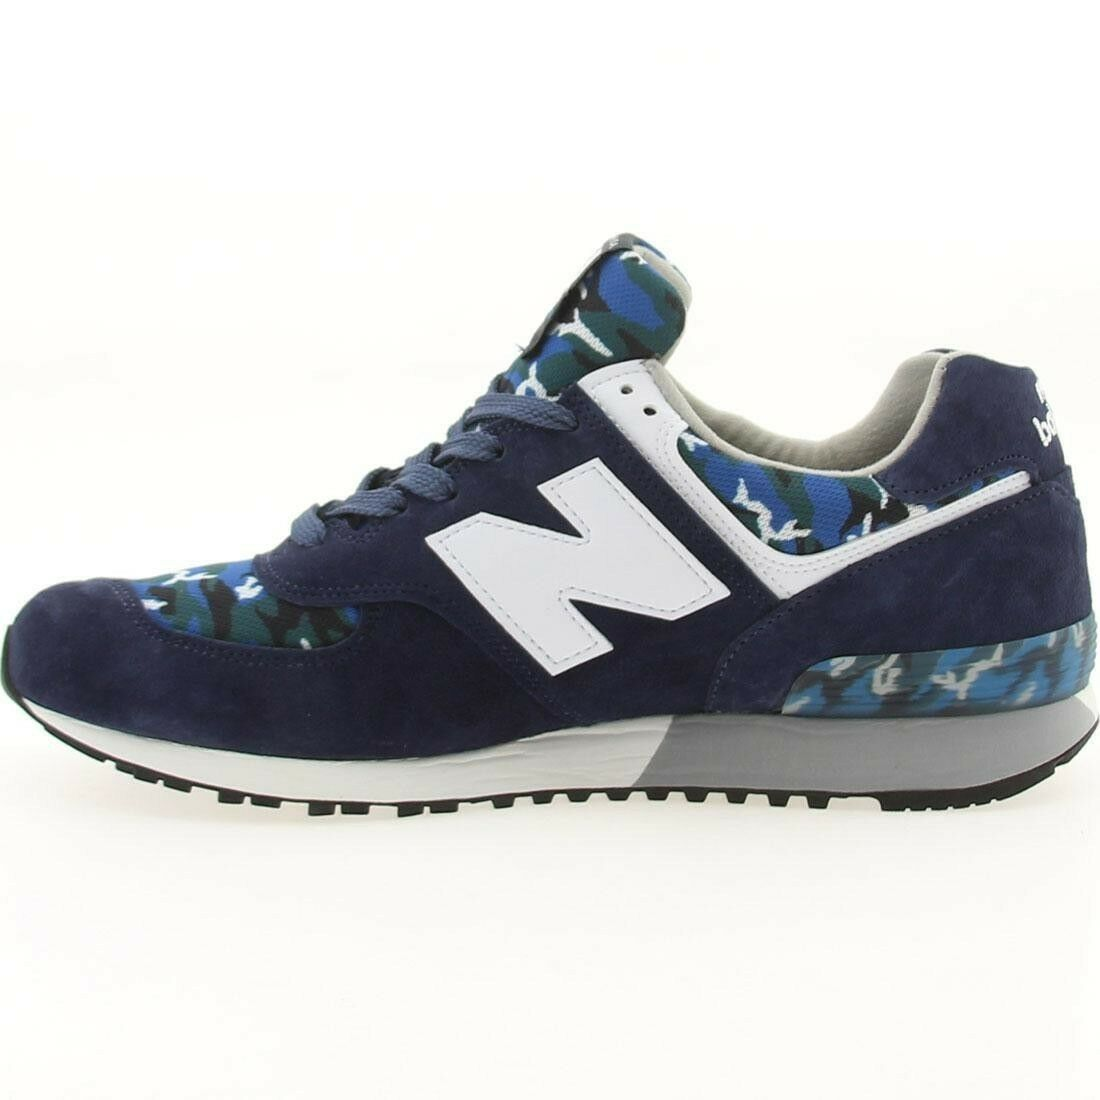 NEW BALANCE US576CM1 CLASSIC CAMO PACK NAVY/CAMO SIZE10.5 MADE IN USA MSRP199.99